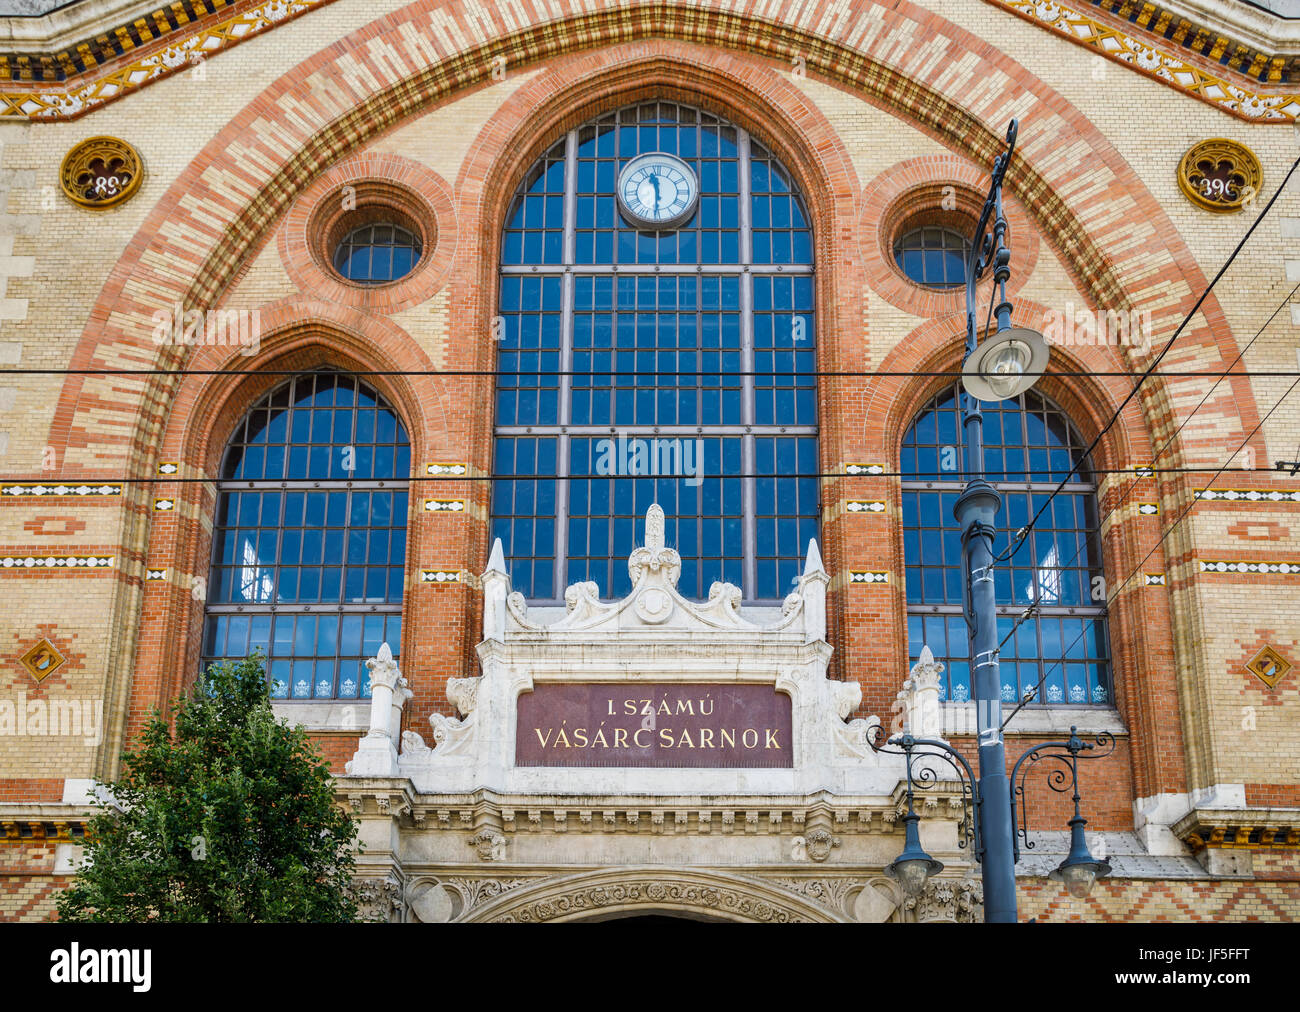 Exterior of entrance to the indoor market at Central Market Hall (Vasarcsarnok), at end of Vaci ucta, Pest, Budapest, - Stock Image